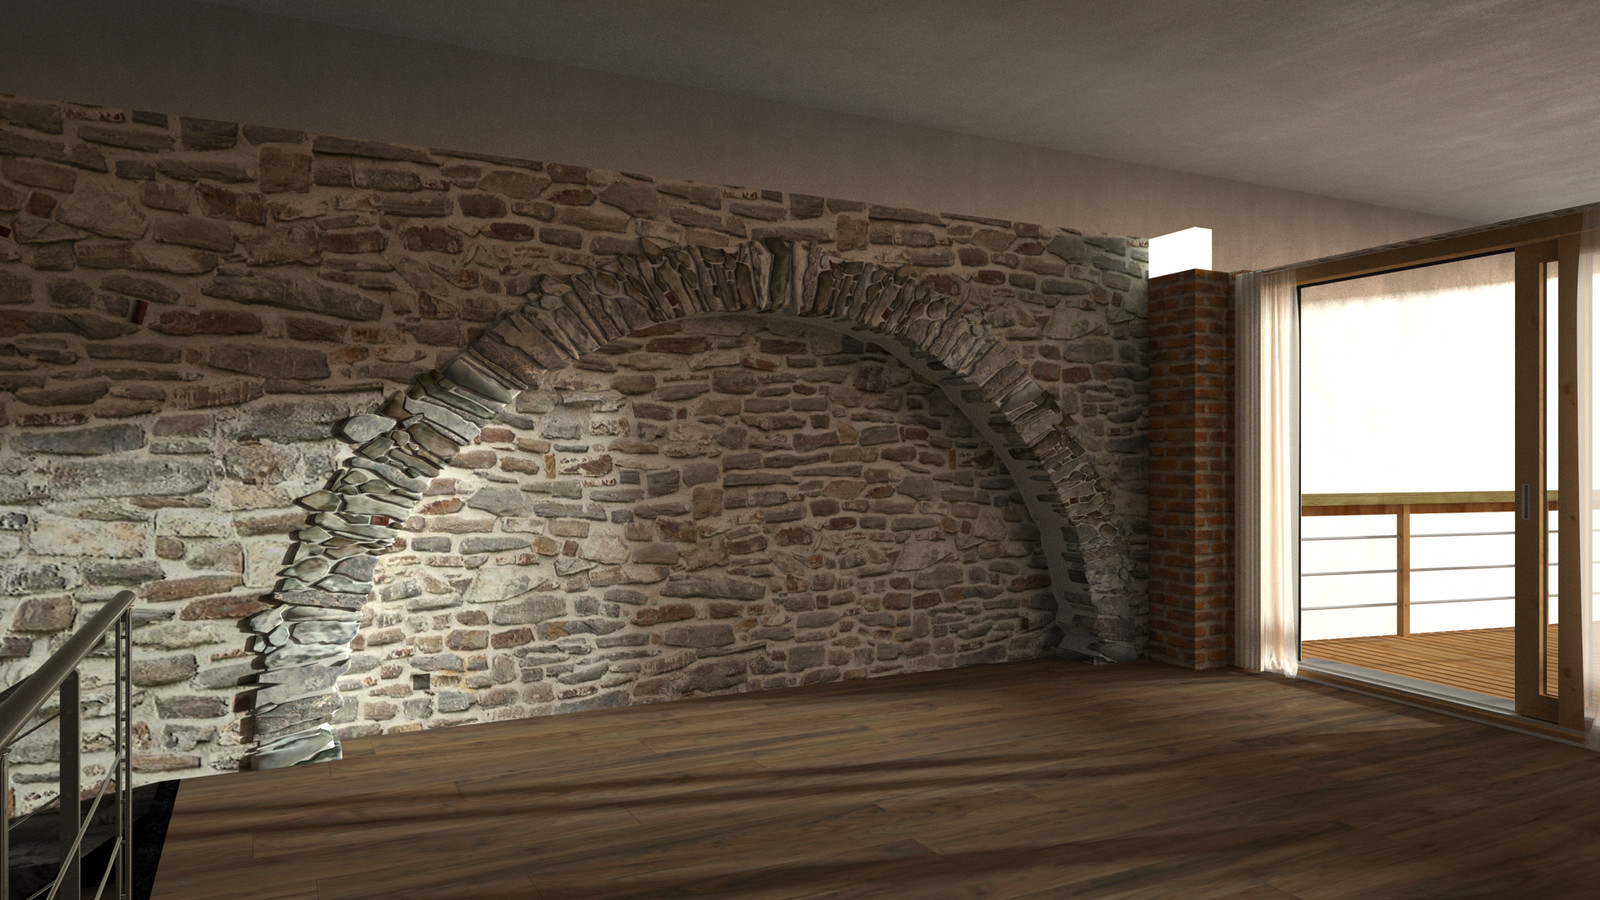 Rocks and Wall surface